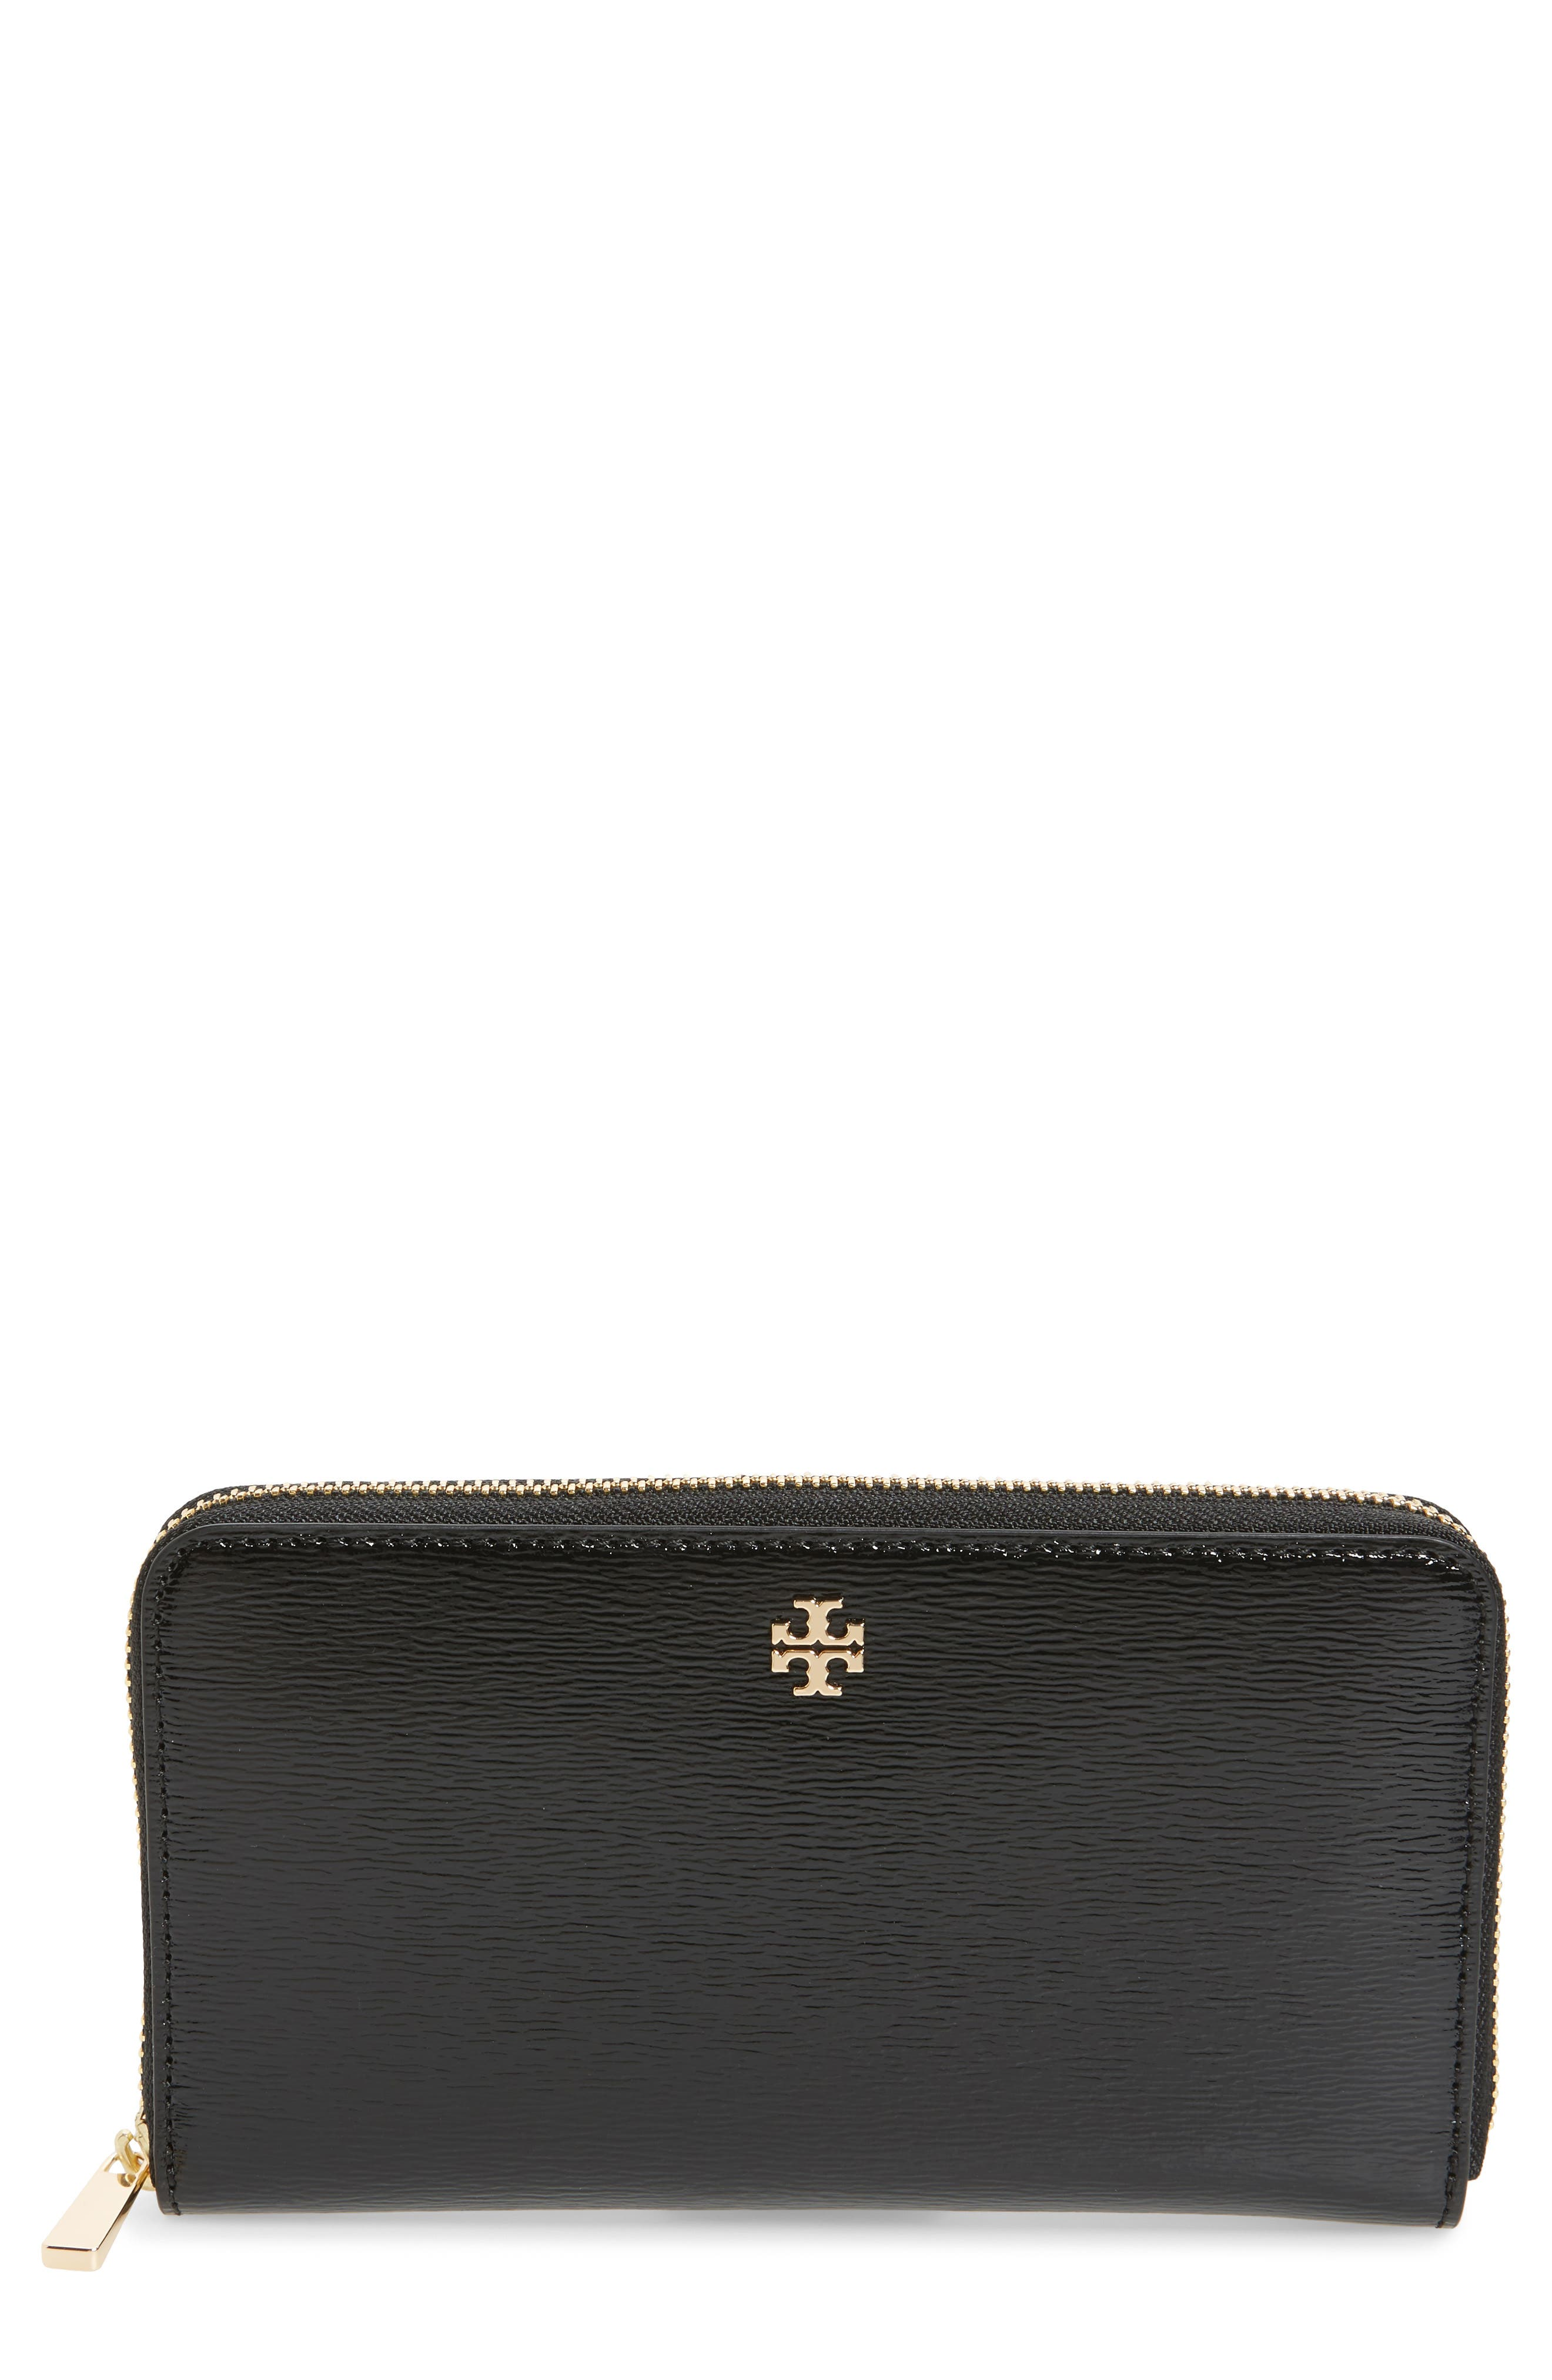 Robinson Patent Leather Continental Wallet,                         Main,                         color, 001